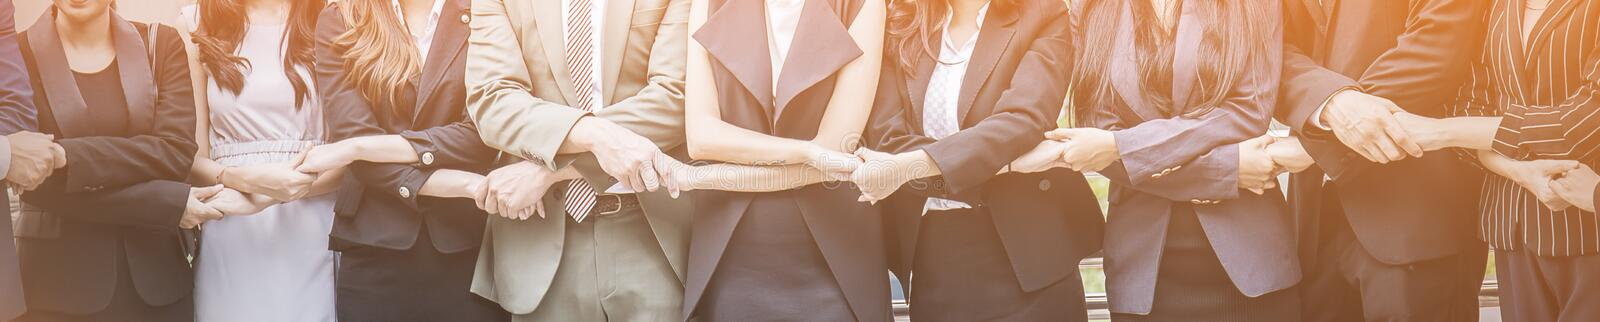 Business teamwork holding hands stand in line royalty free stock images